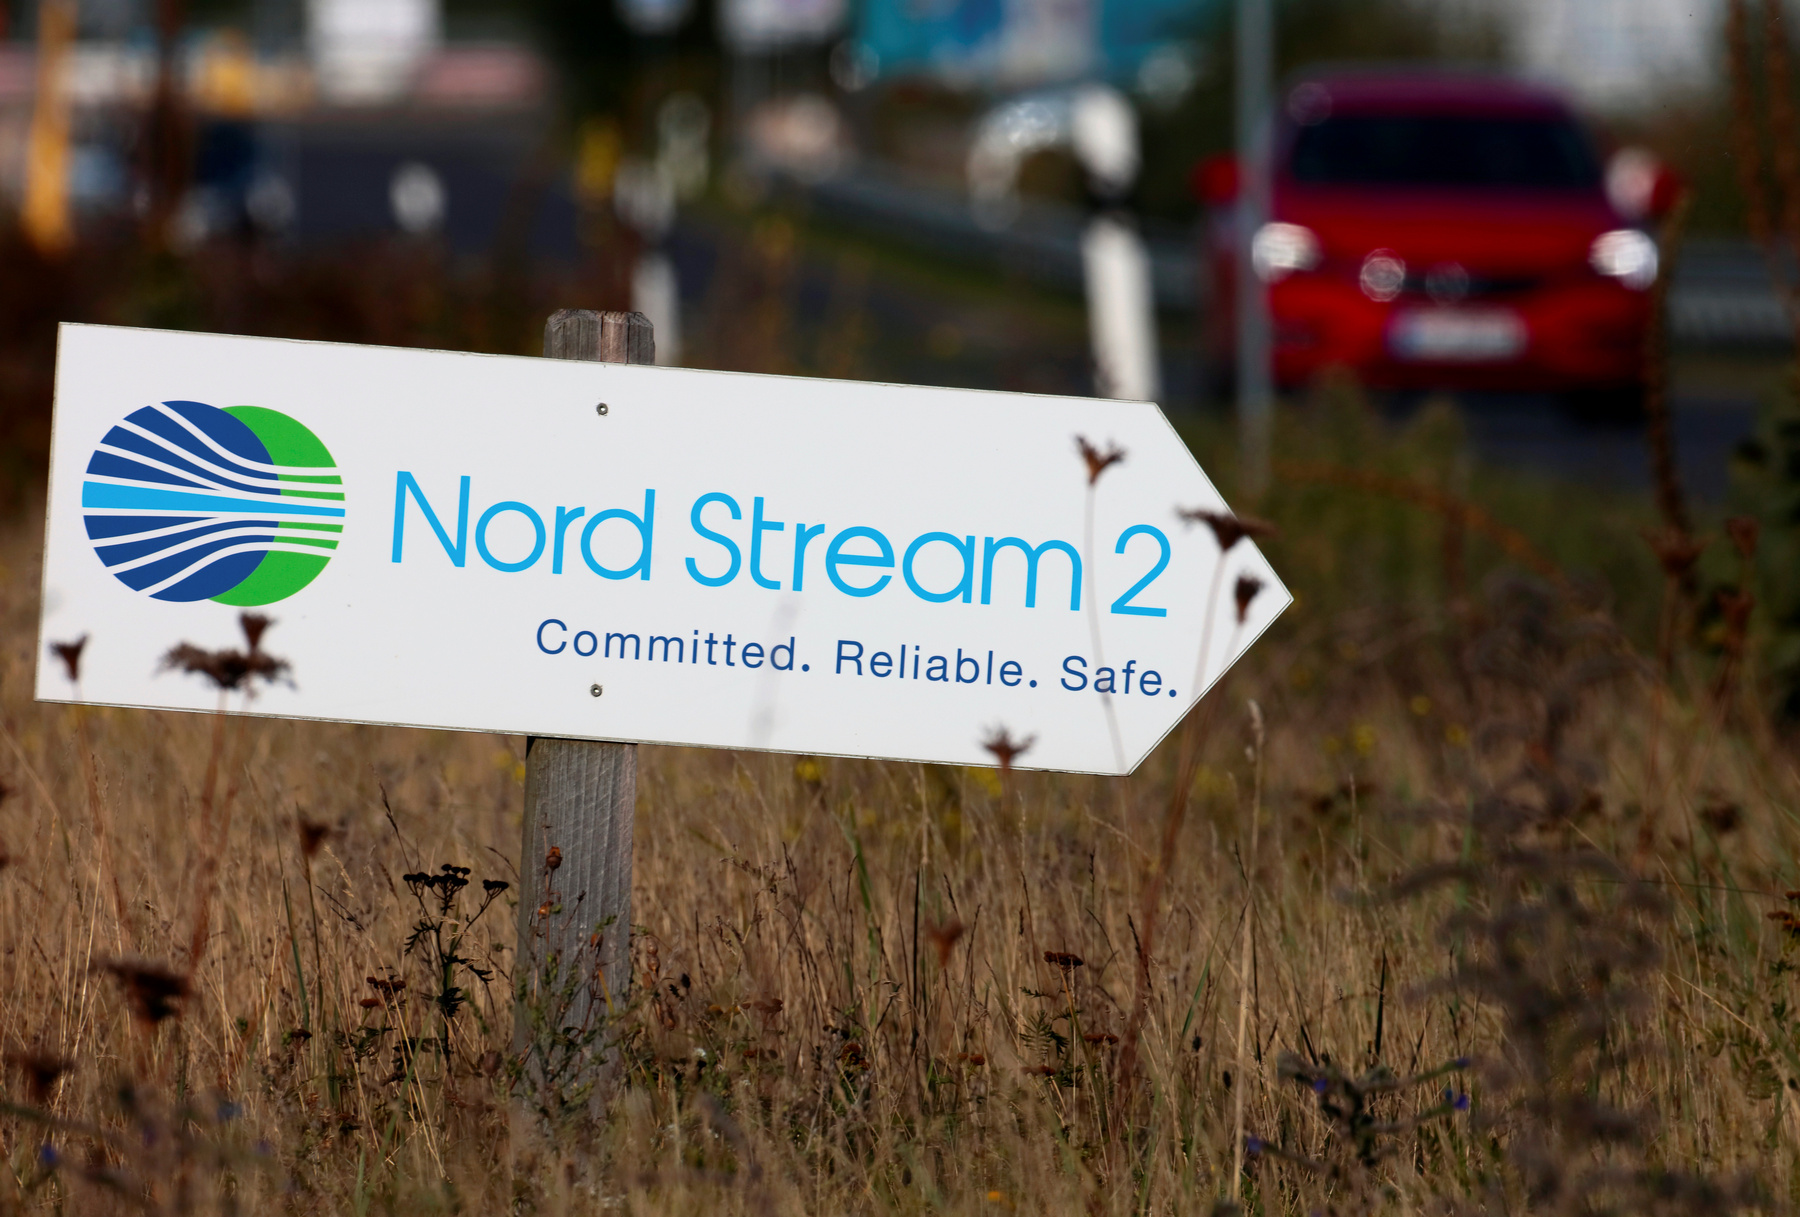 Nord Stream 2 and more sanctions: the endgame begins